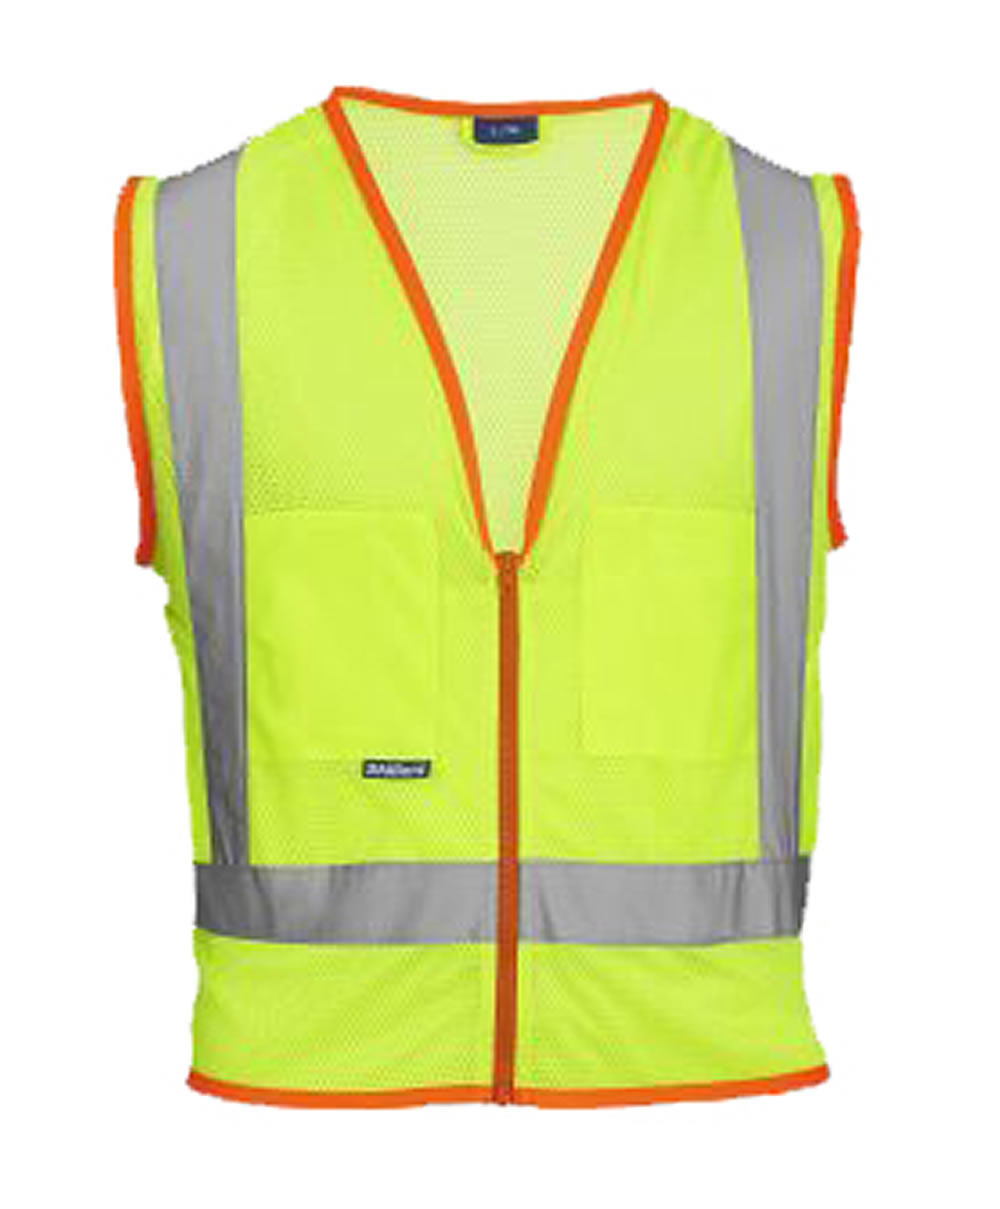 Skillers High Visibility Mesh Safety Vest – Lime Green